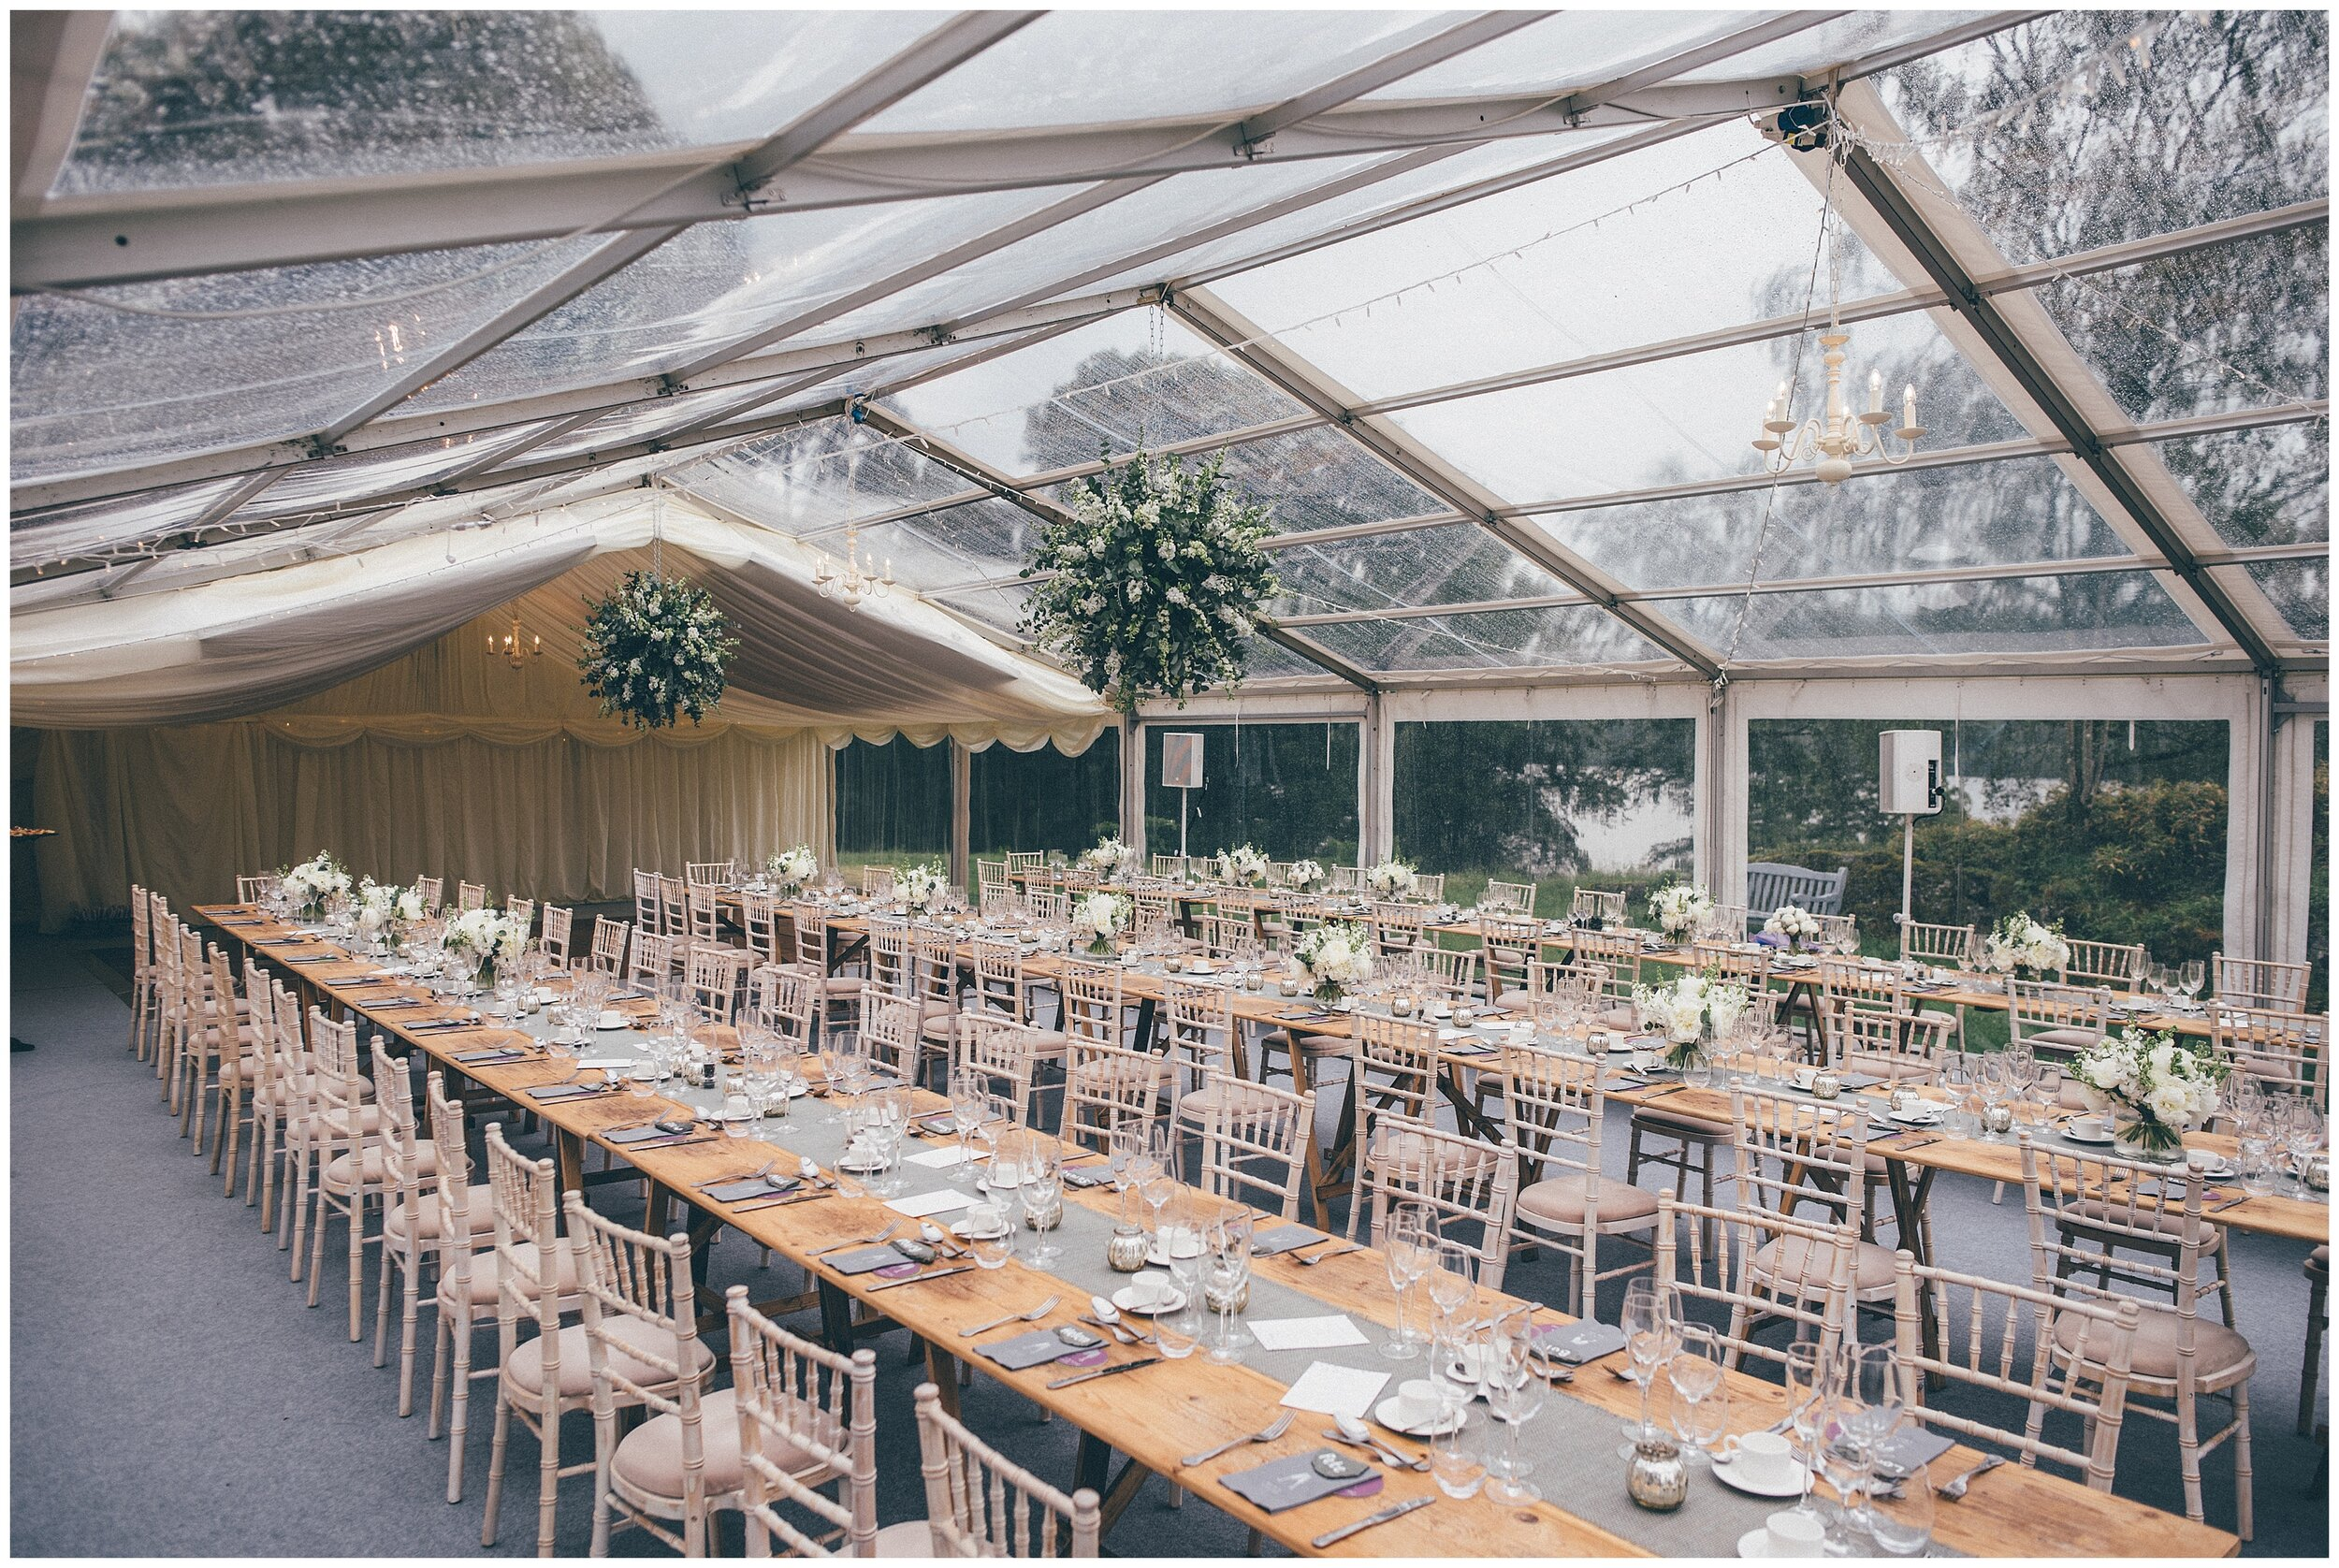 Wedding details in the marquee at Silverholme Manor at Graythwaite Estate in the Lake District.